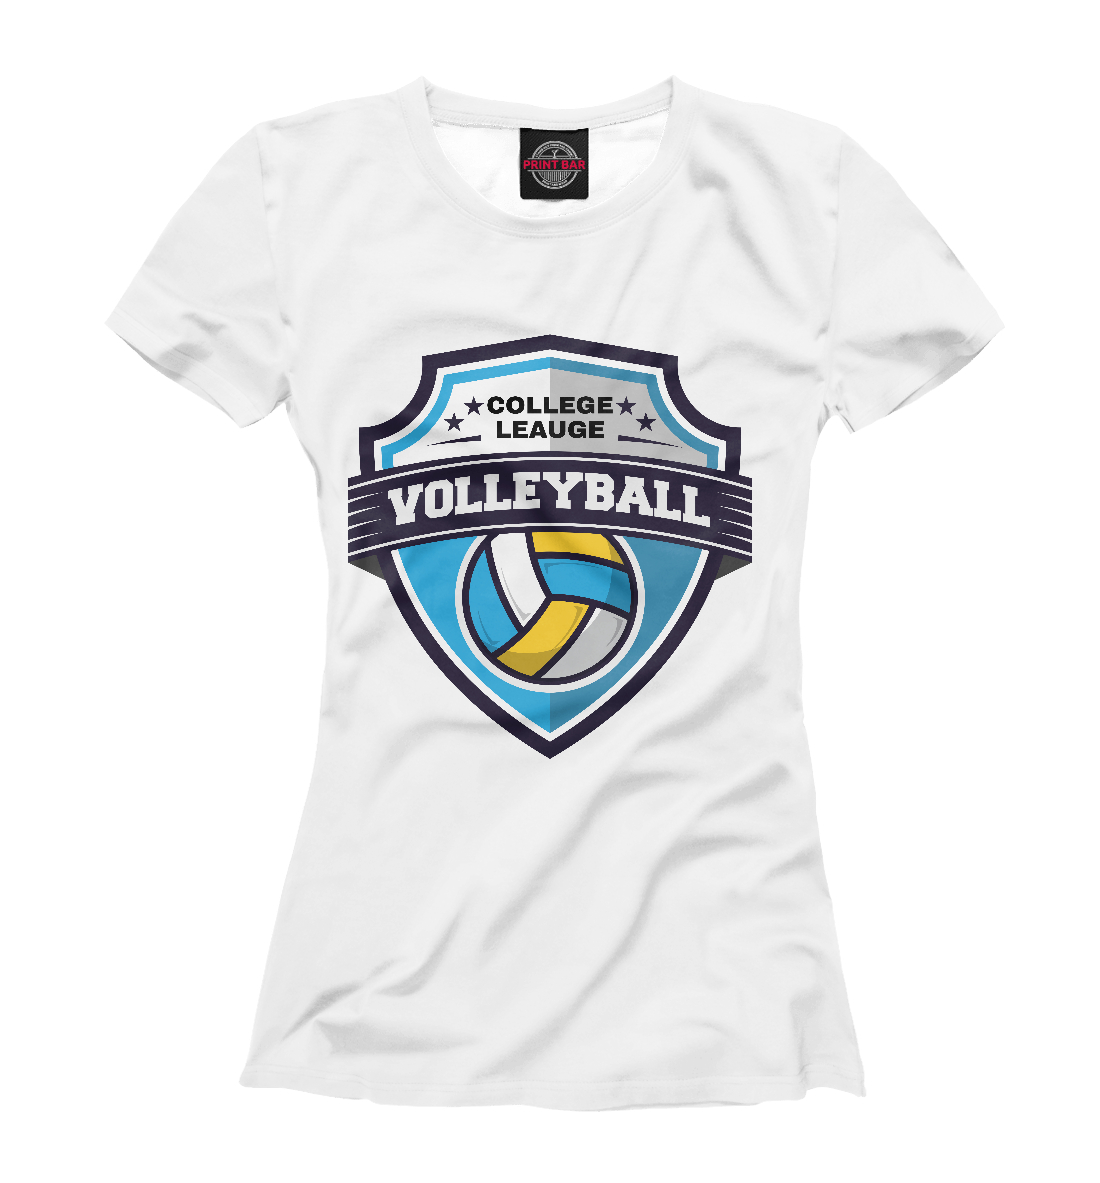 Купить Volleyball, Printbar, Футболки, VLB-745031-fut-1